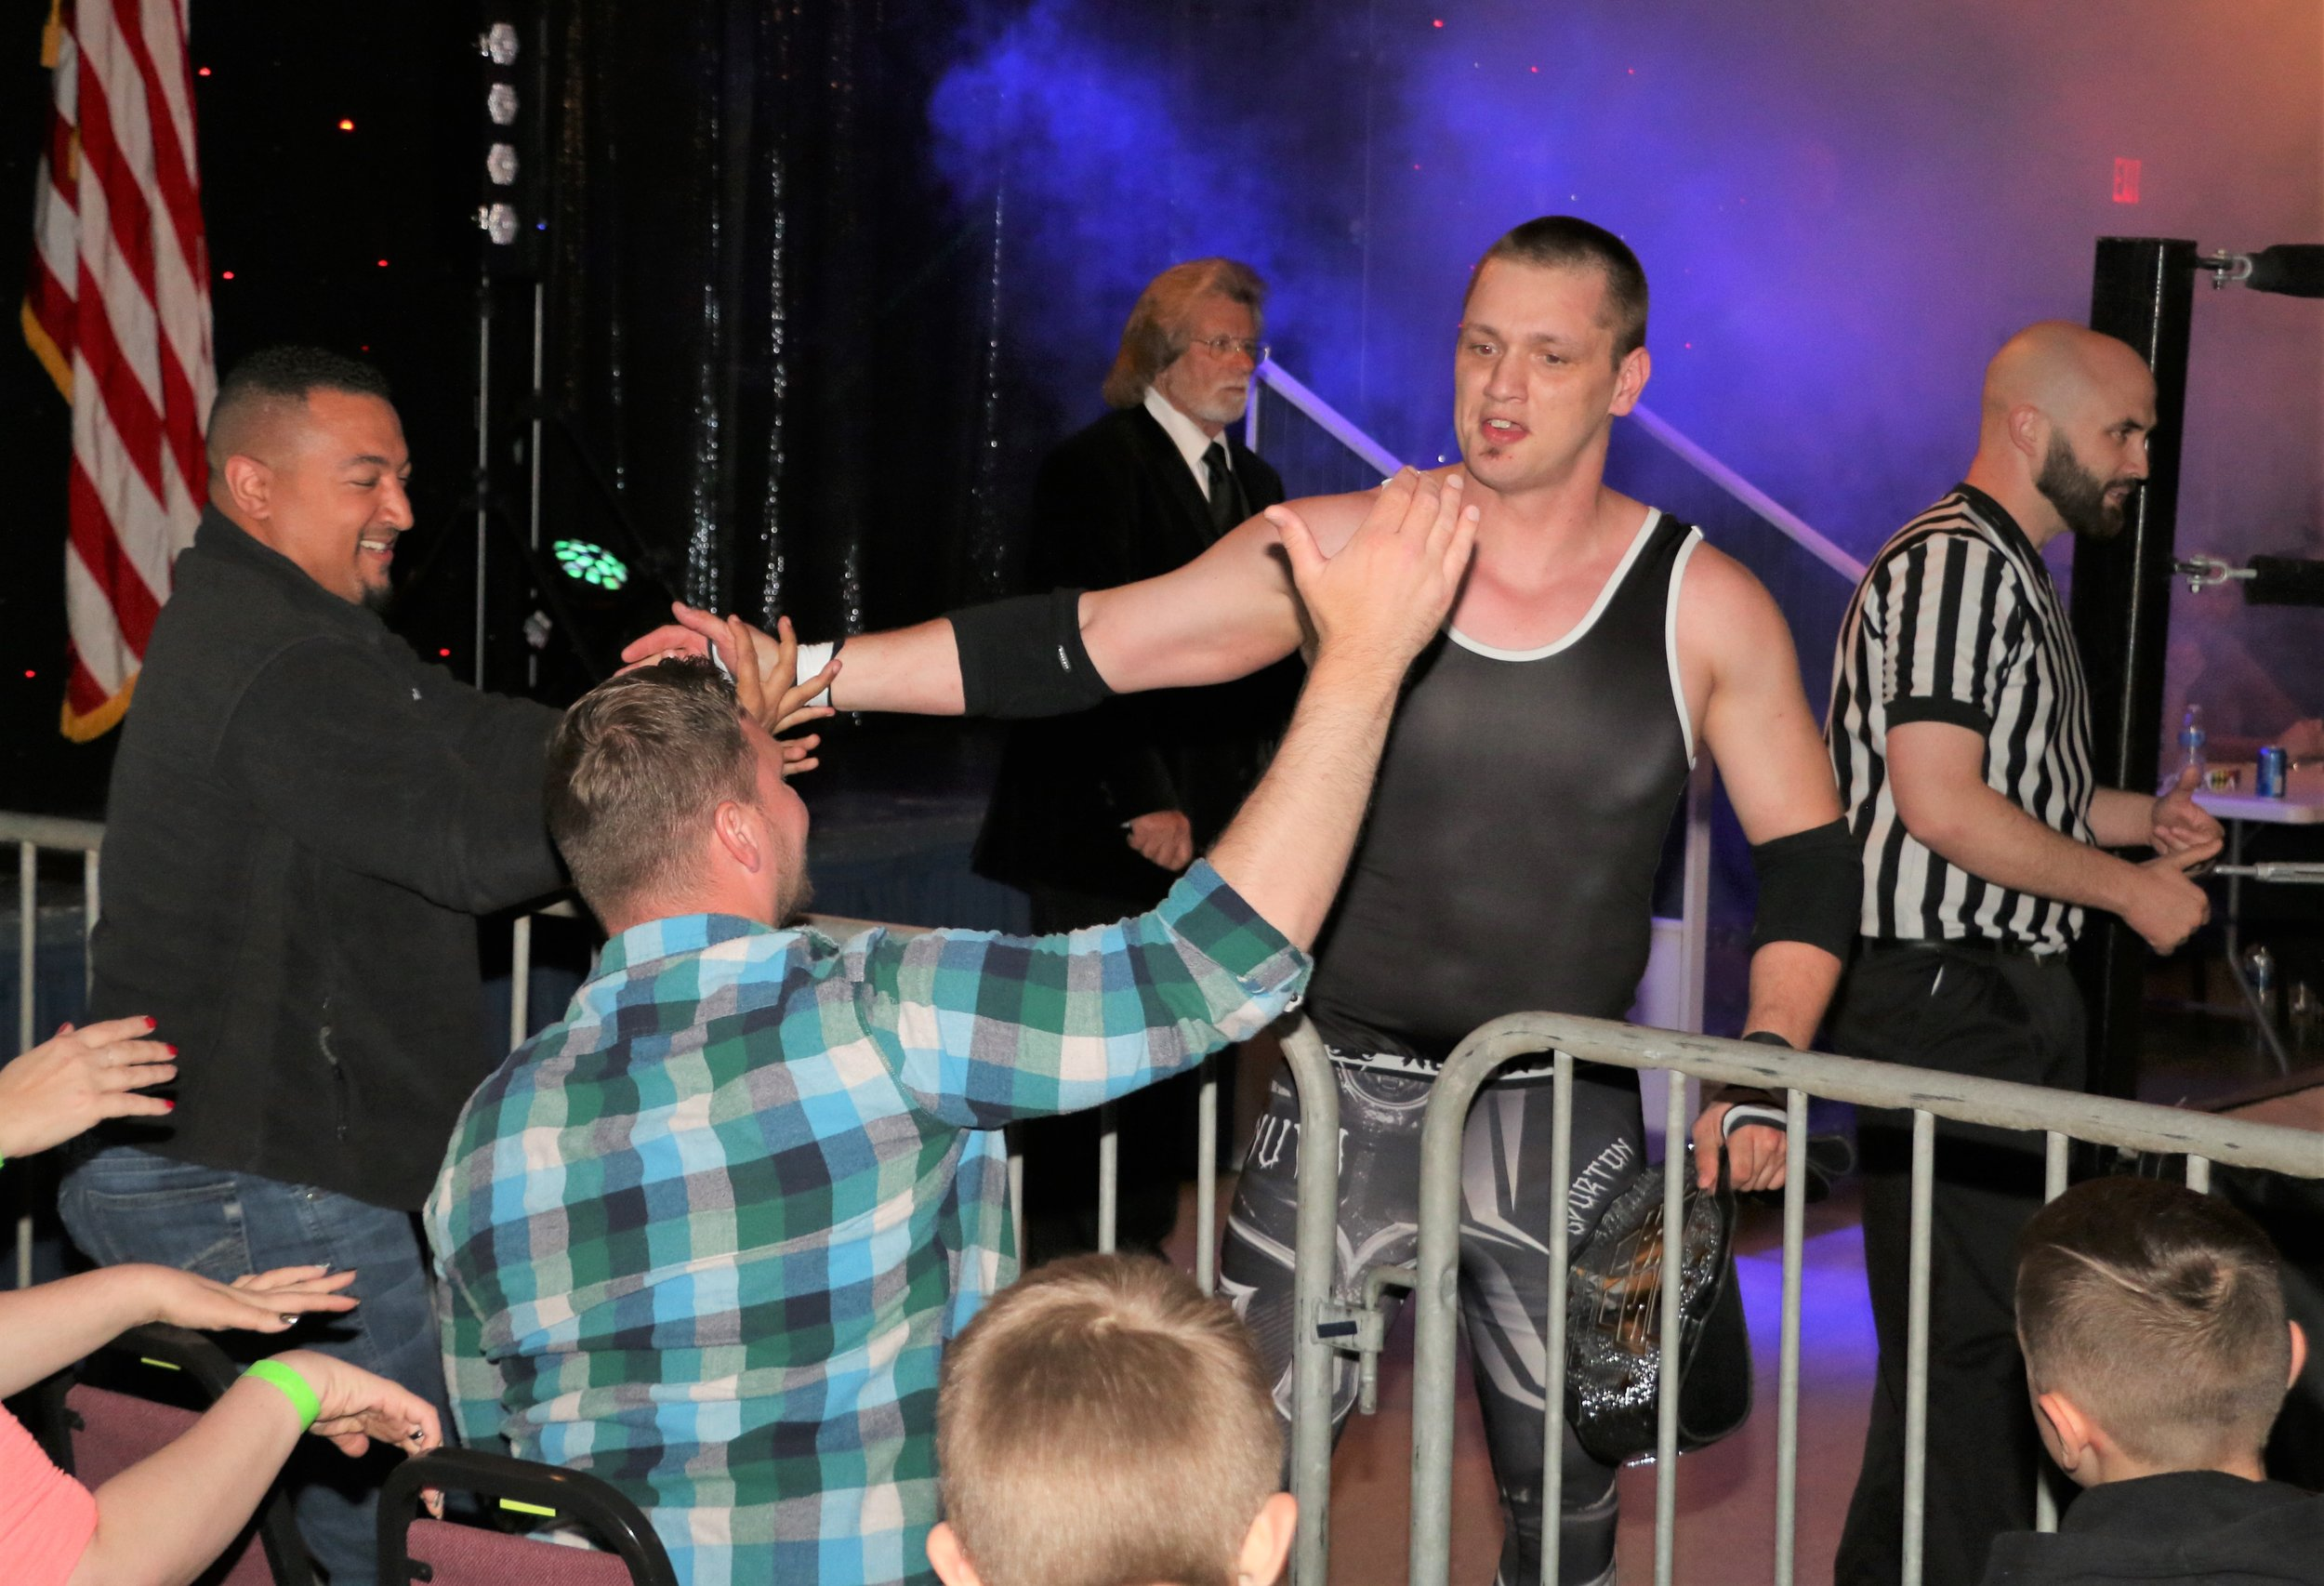 New SSW Champion John Fate celebrates with ringside fans.